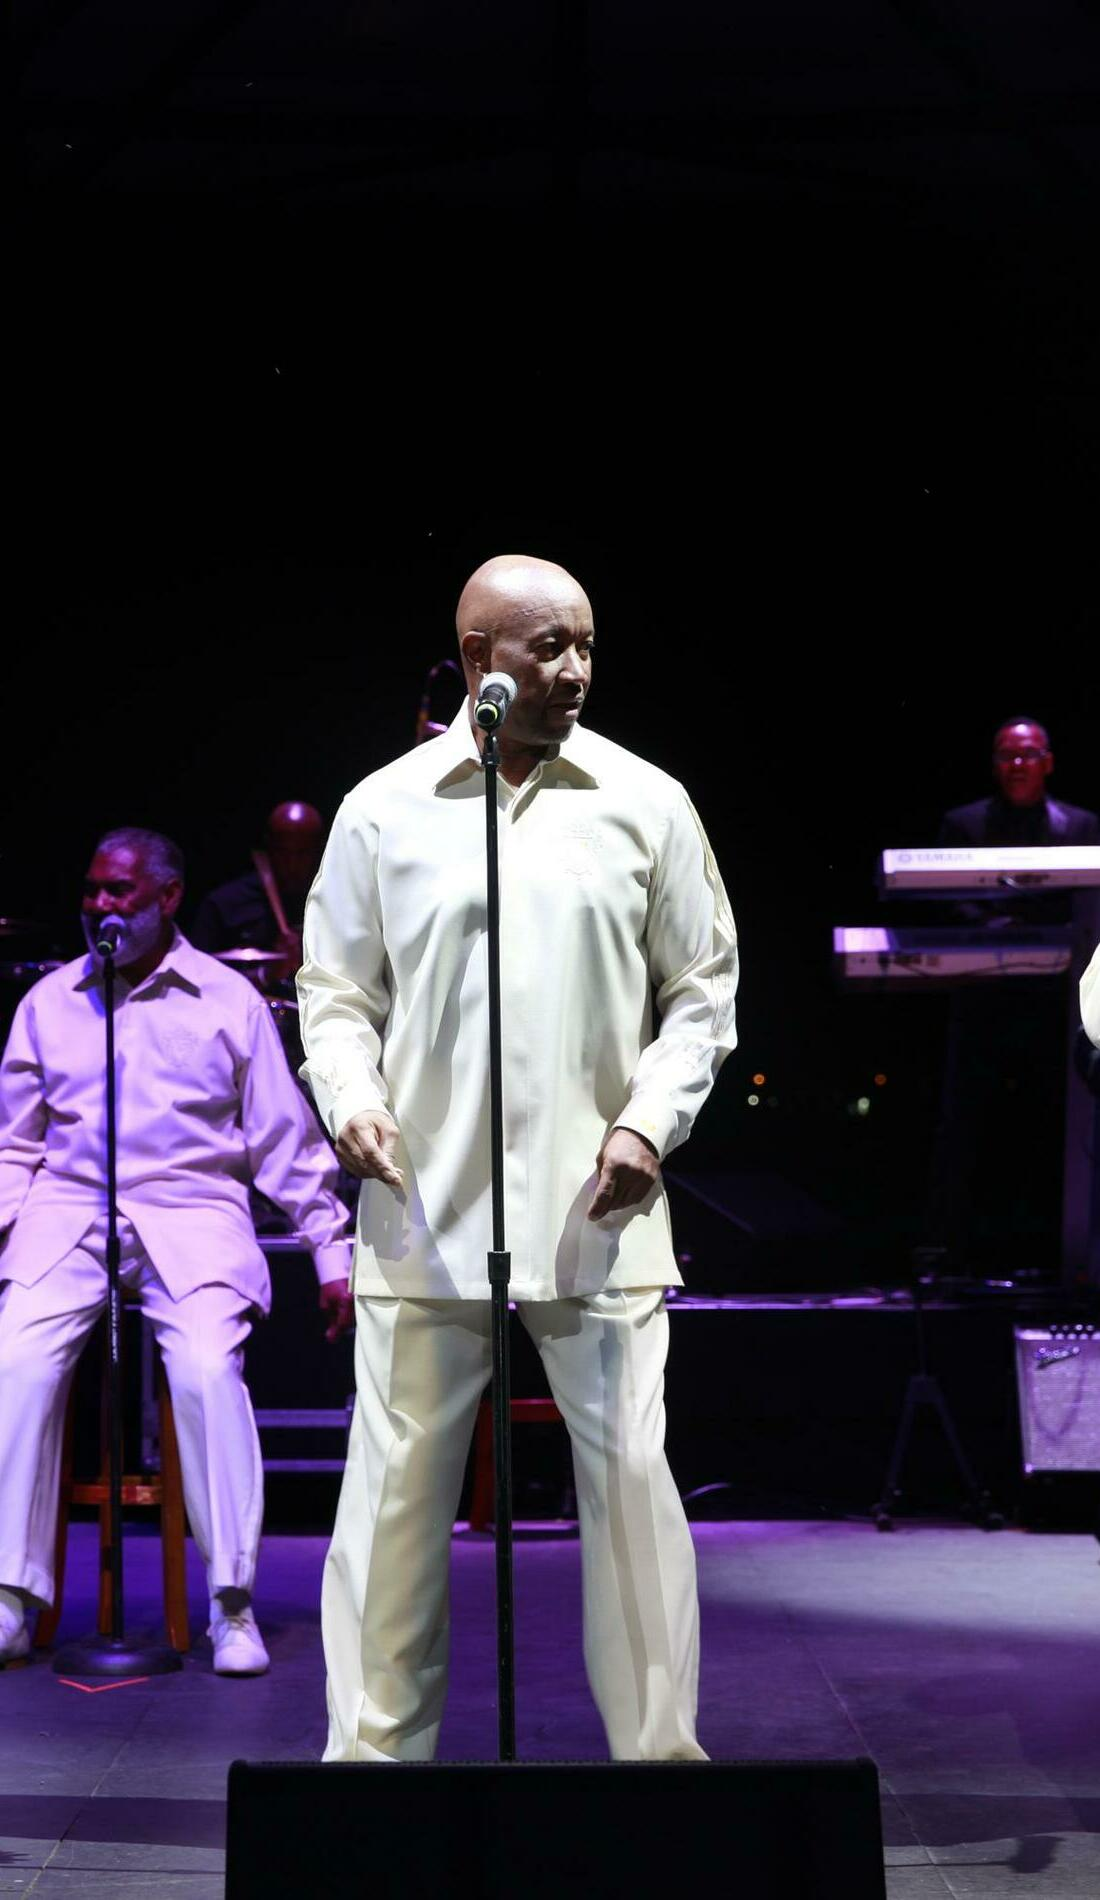 A The Whispers live event